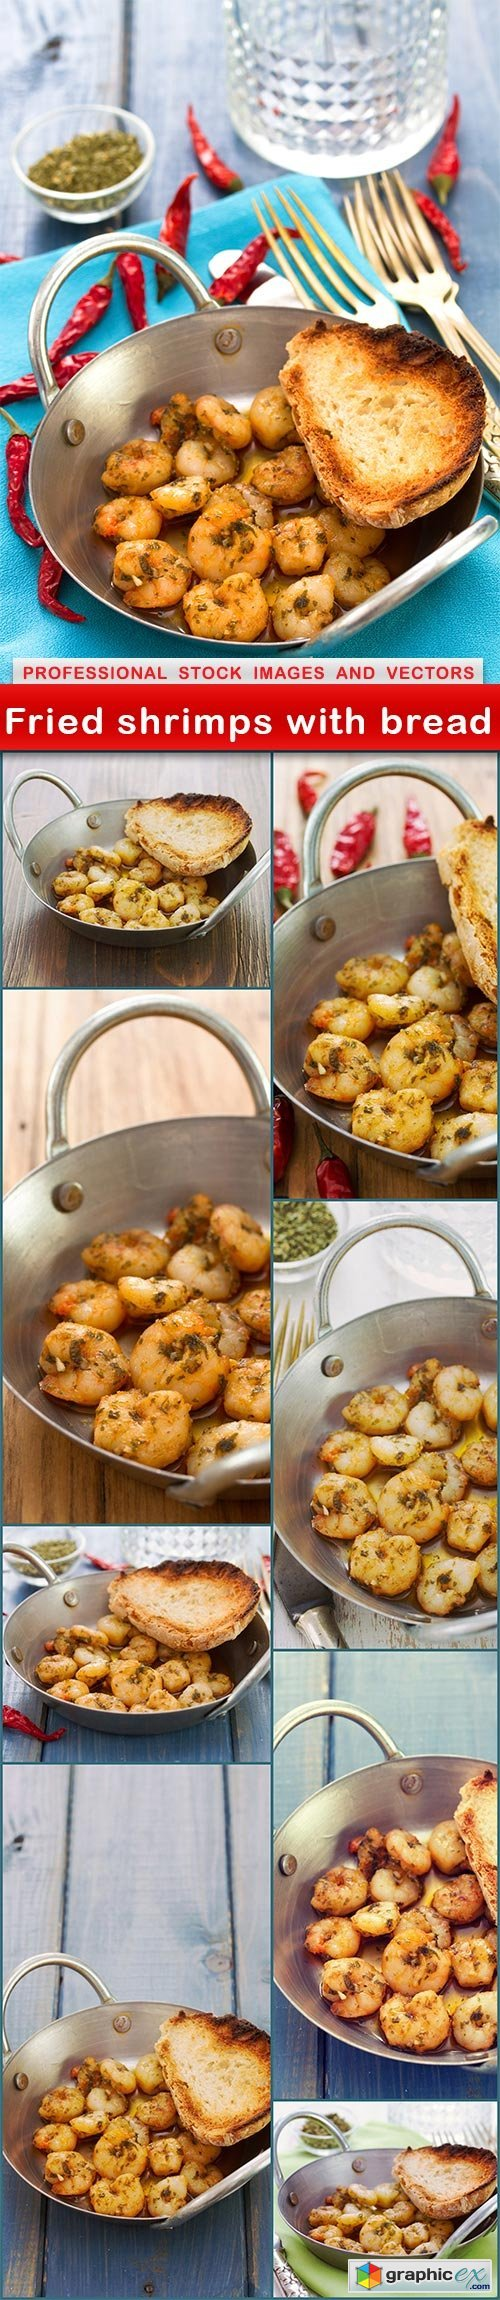 Fried shrimps with bread - 9 UHQ JPEG